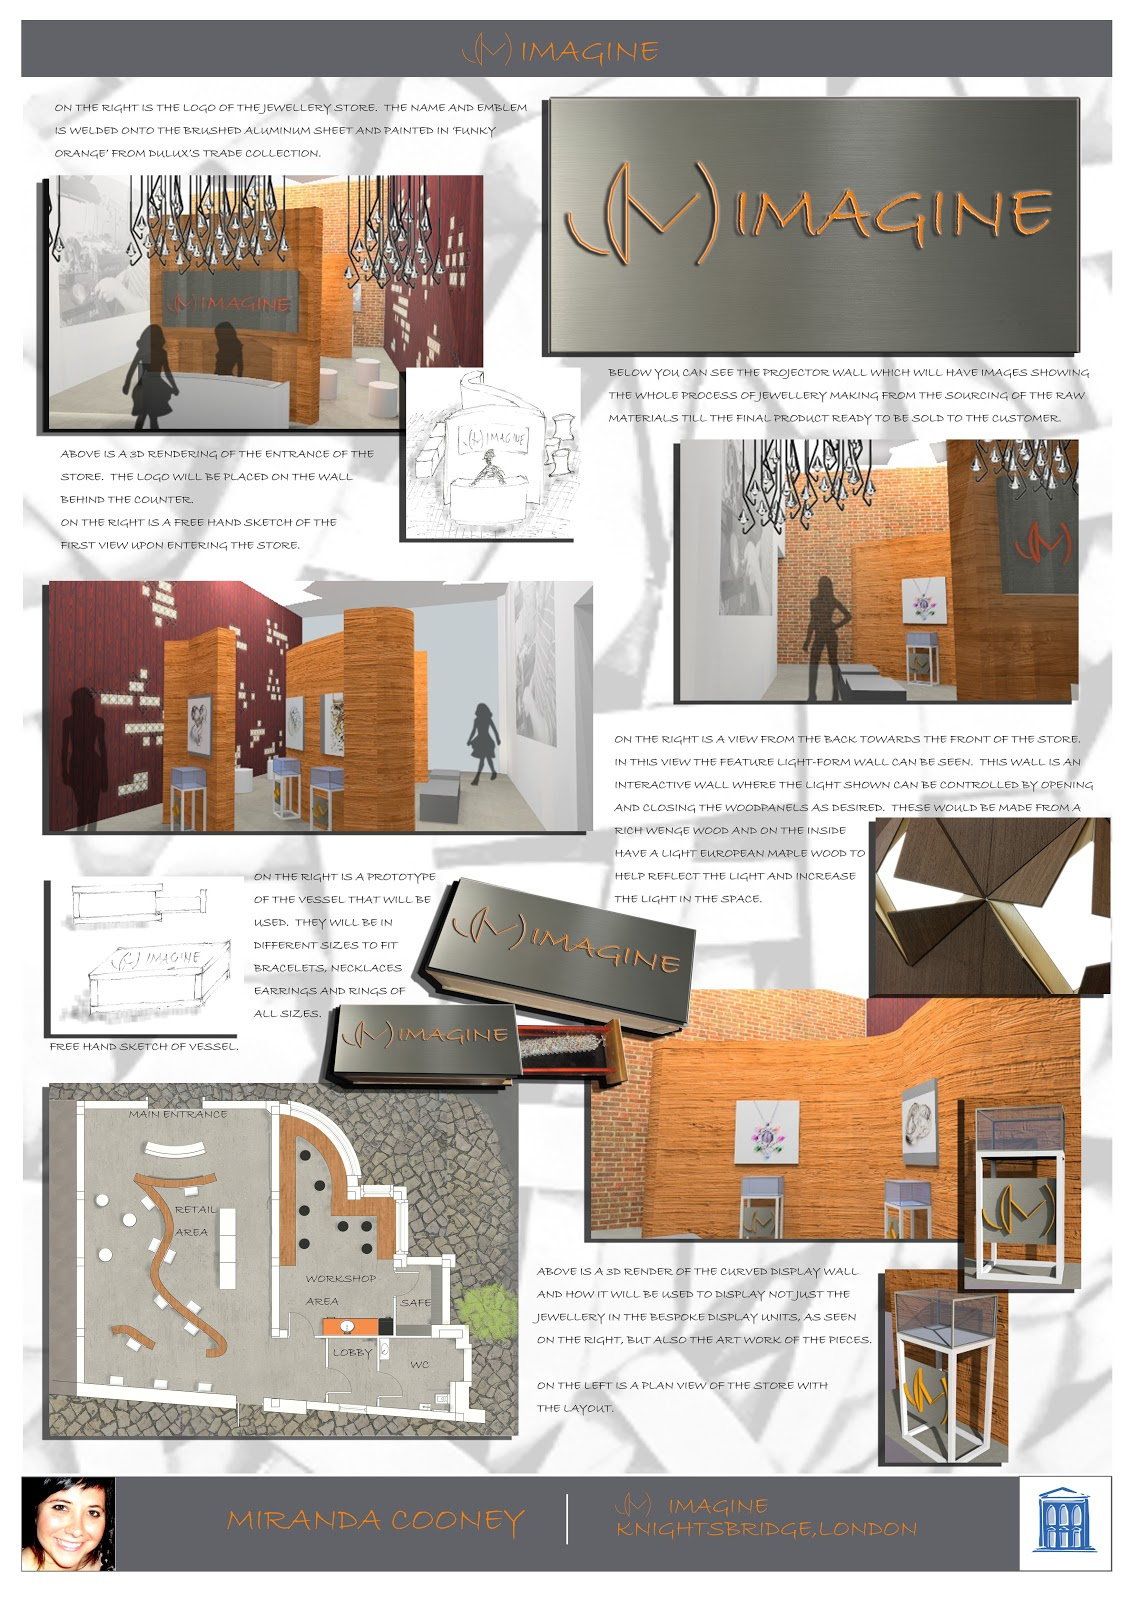 Design at st johns interior architecture design students - Interior design presentation layout ...